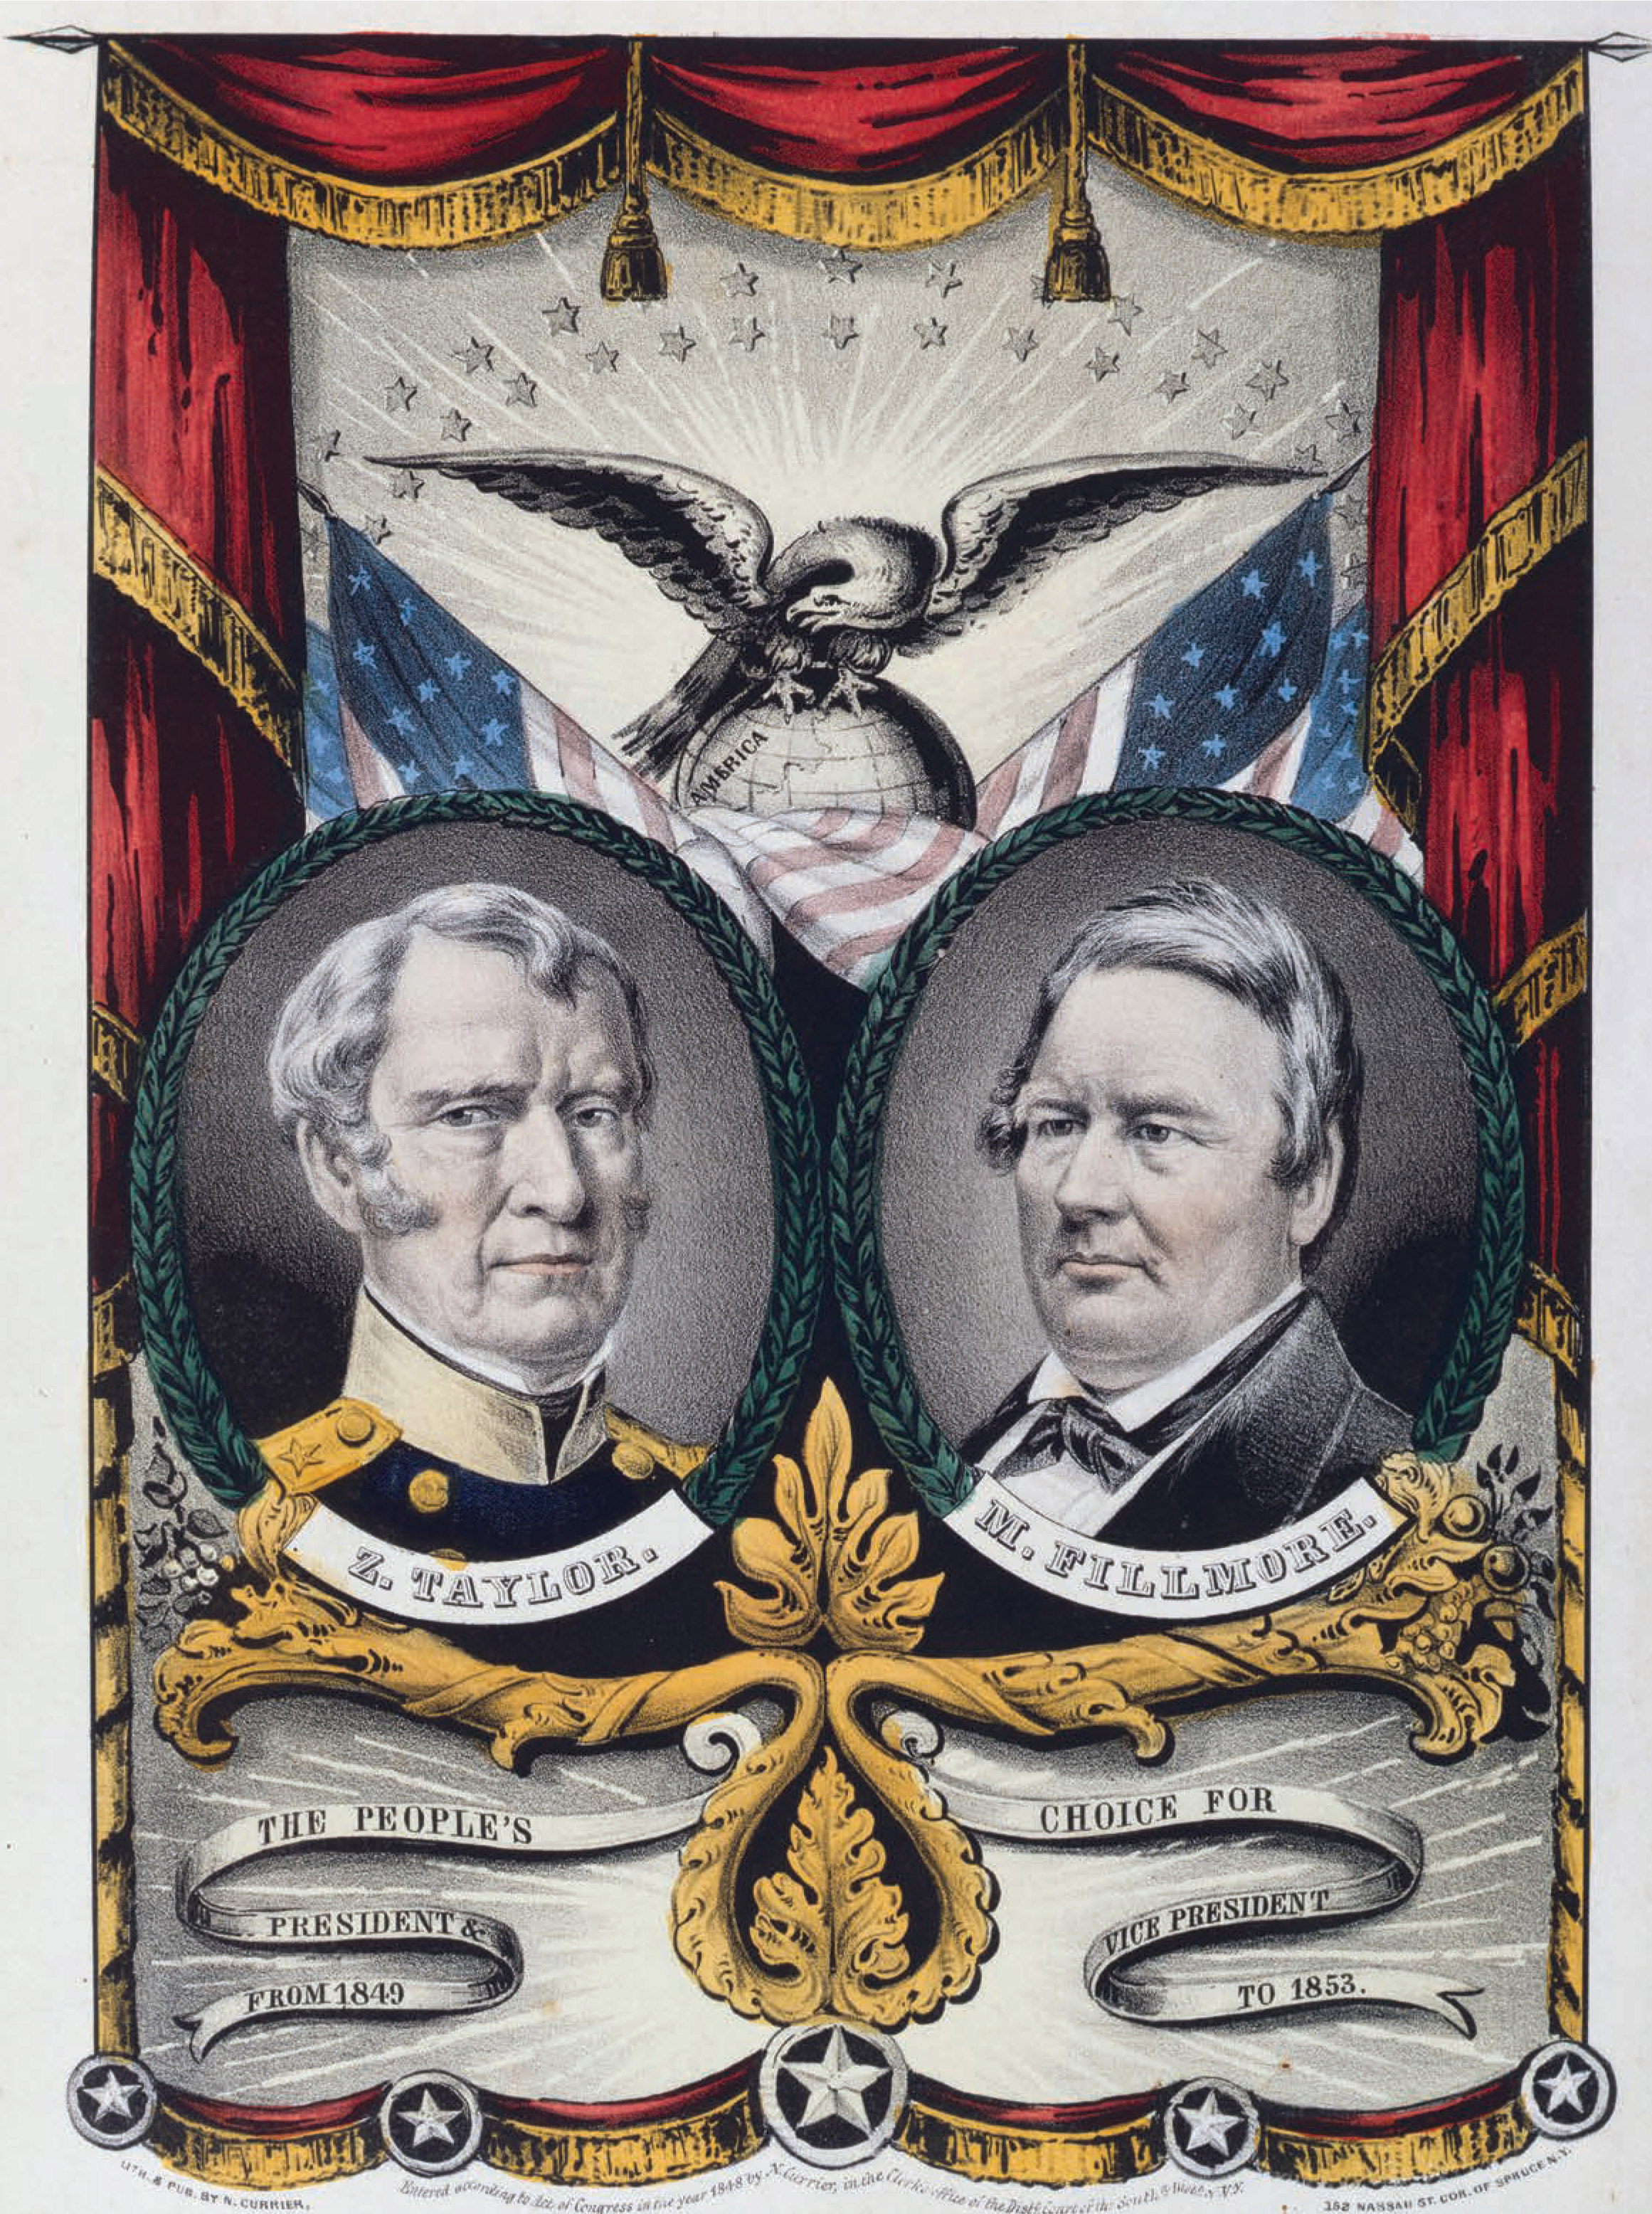 Grand National, Whig Banner/Press Onward. Nathaniel Currier, 1848